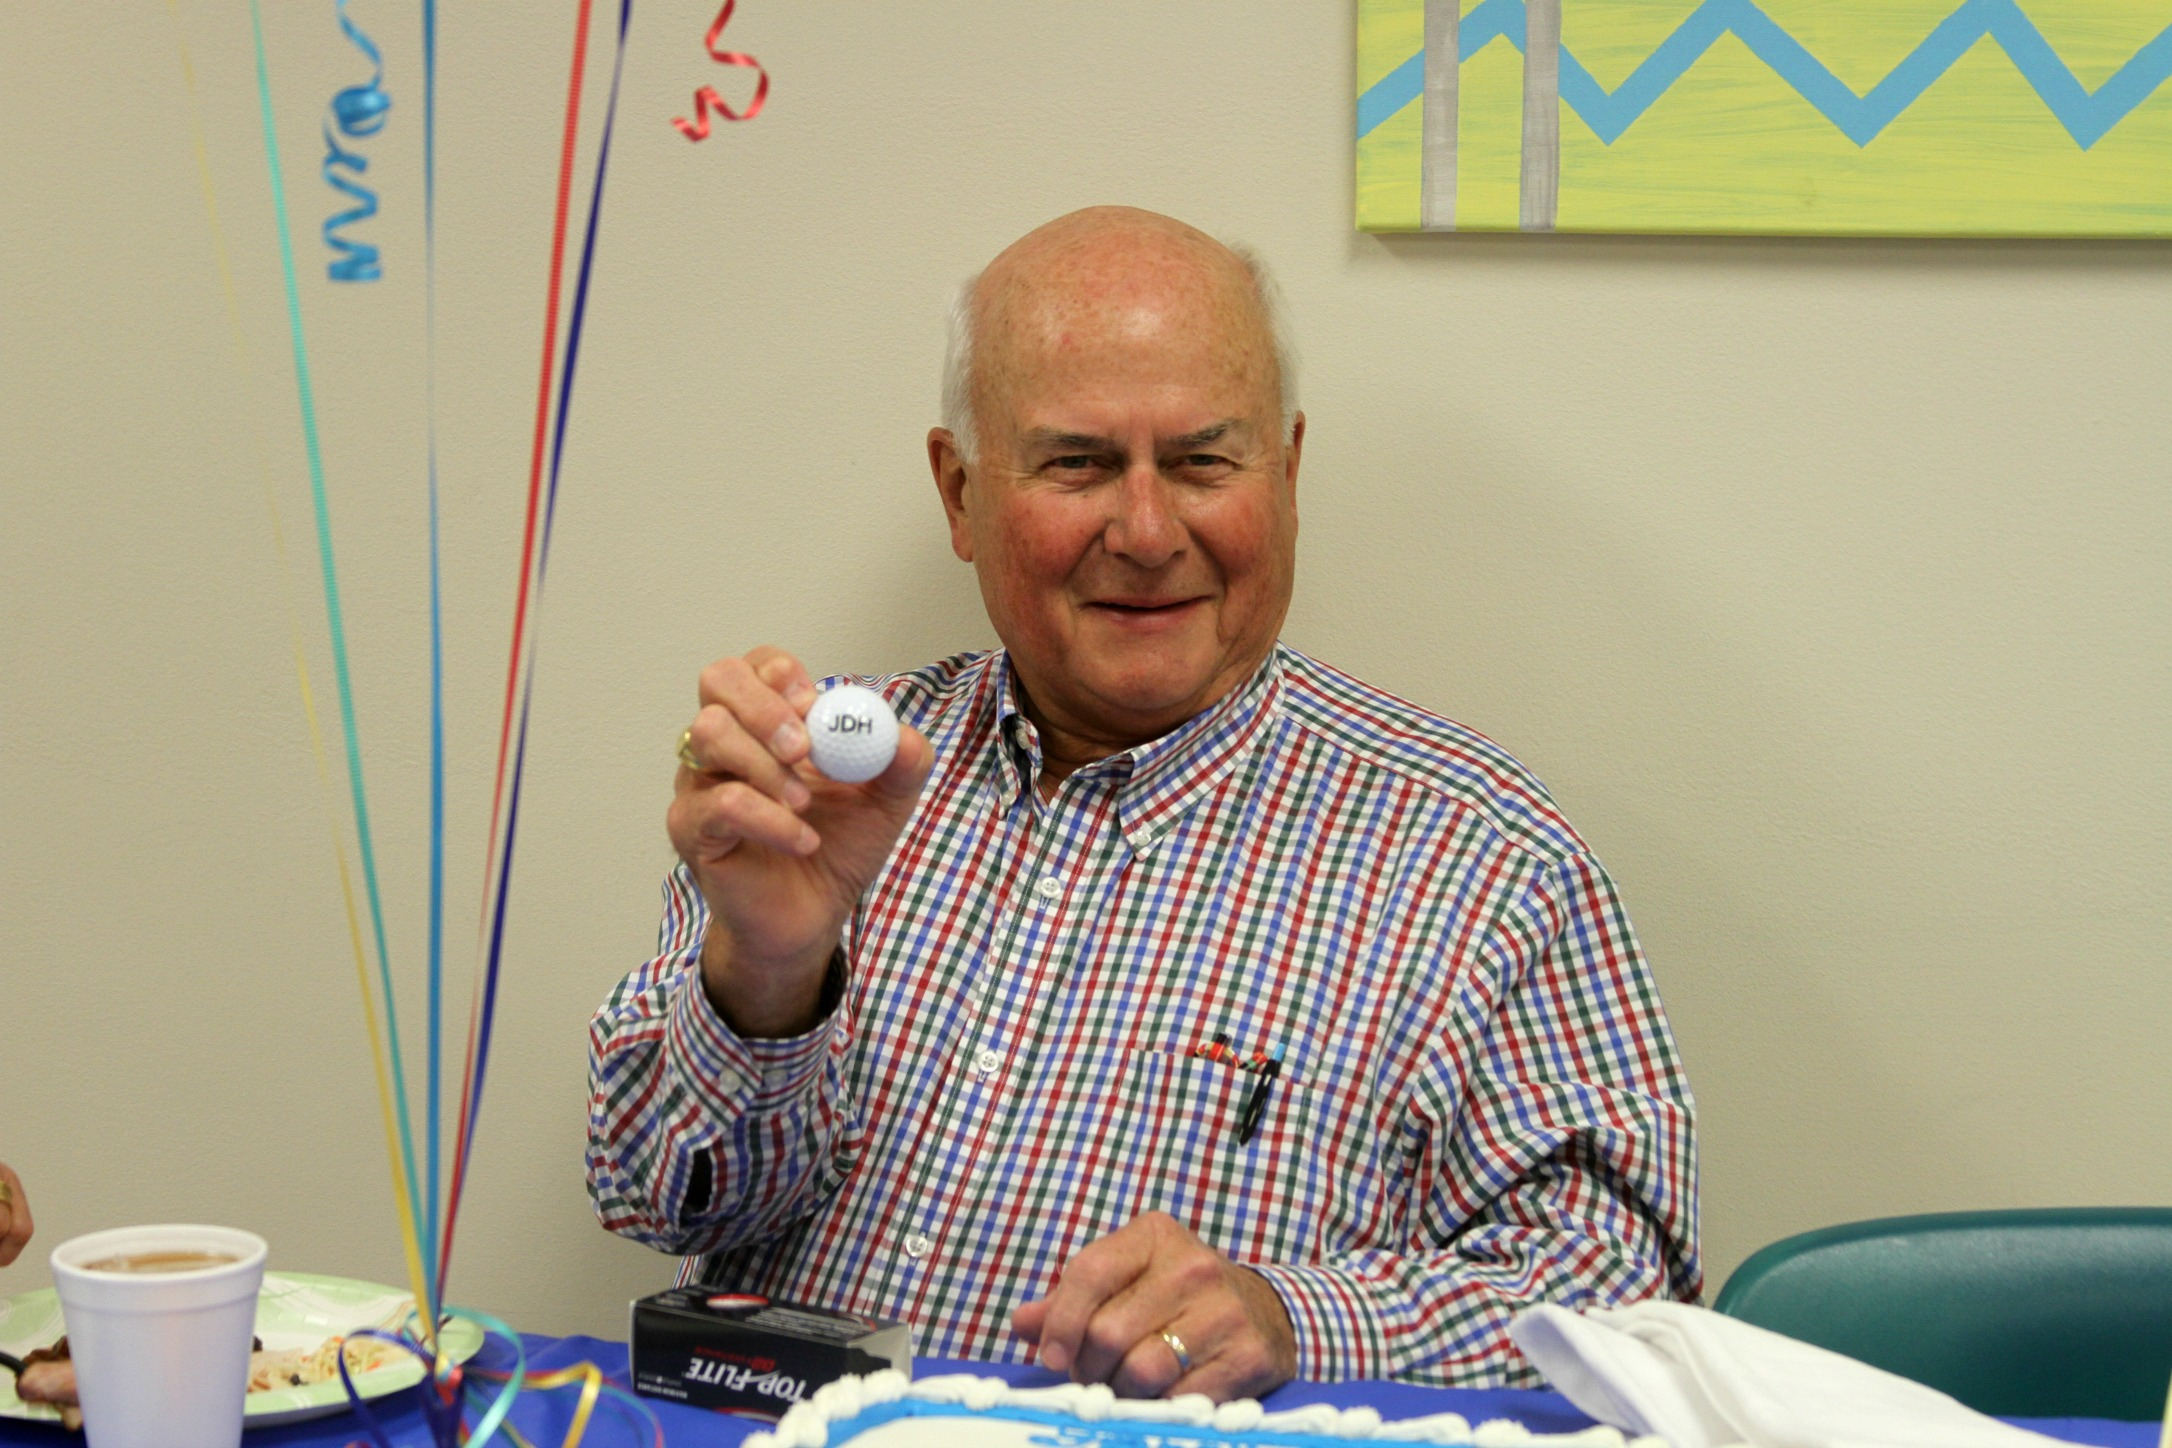 Showing off his new golf balls with his initials.